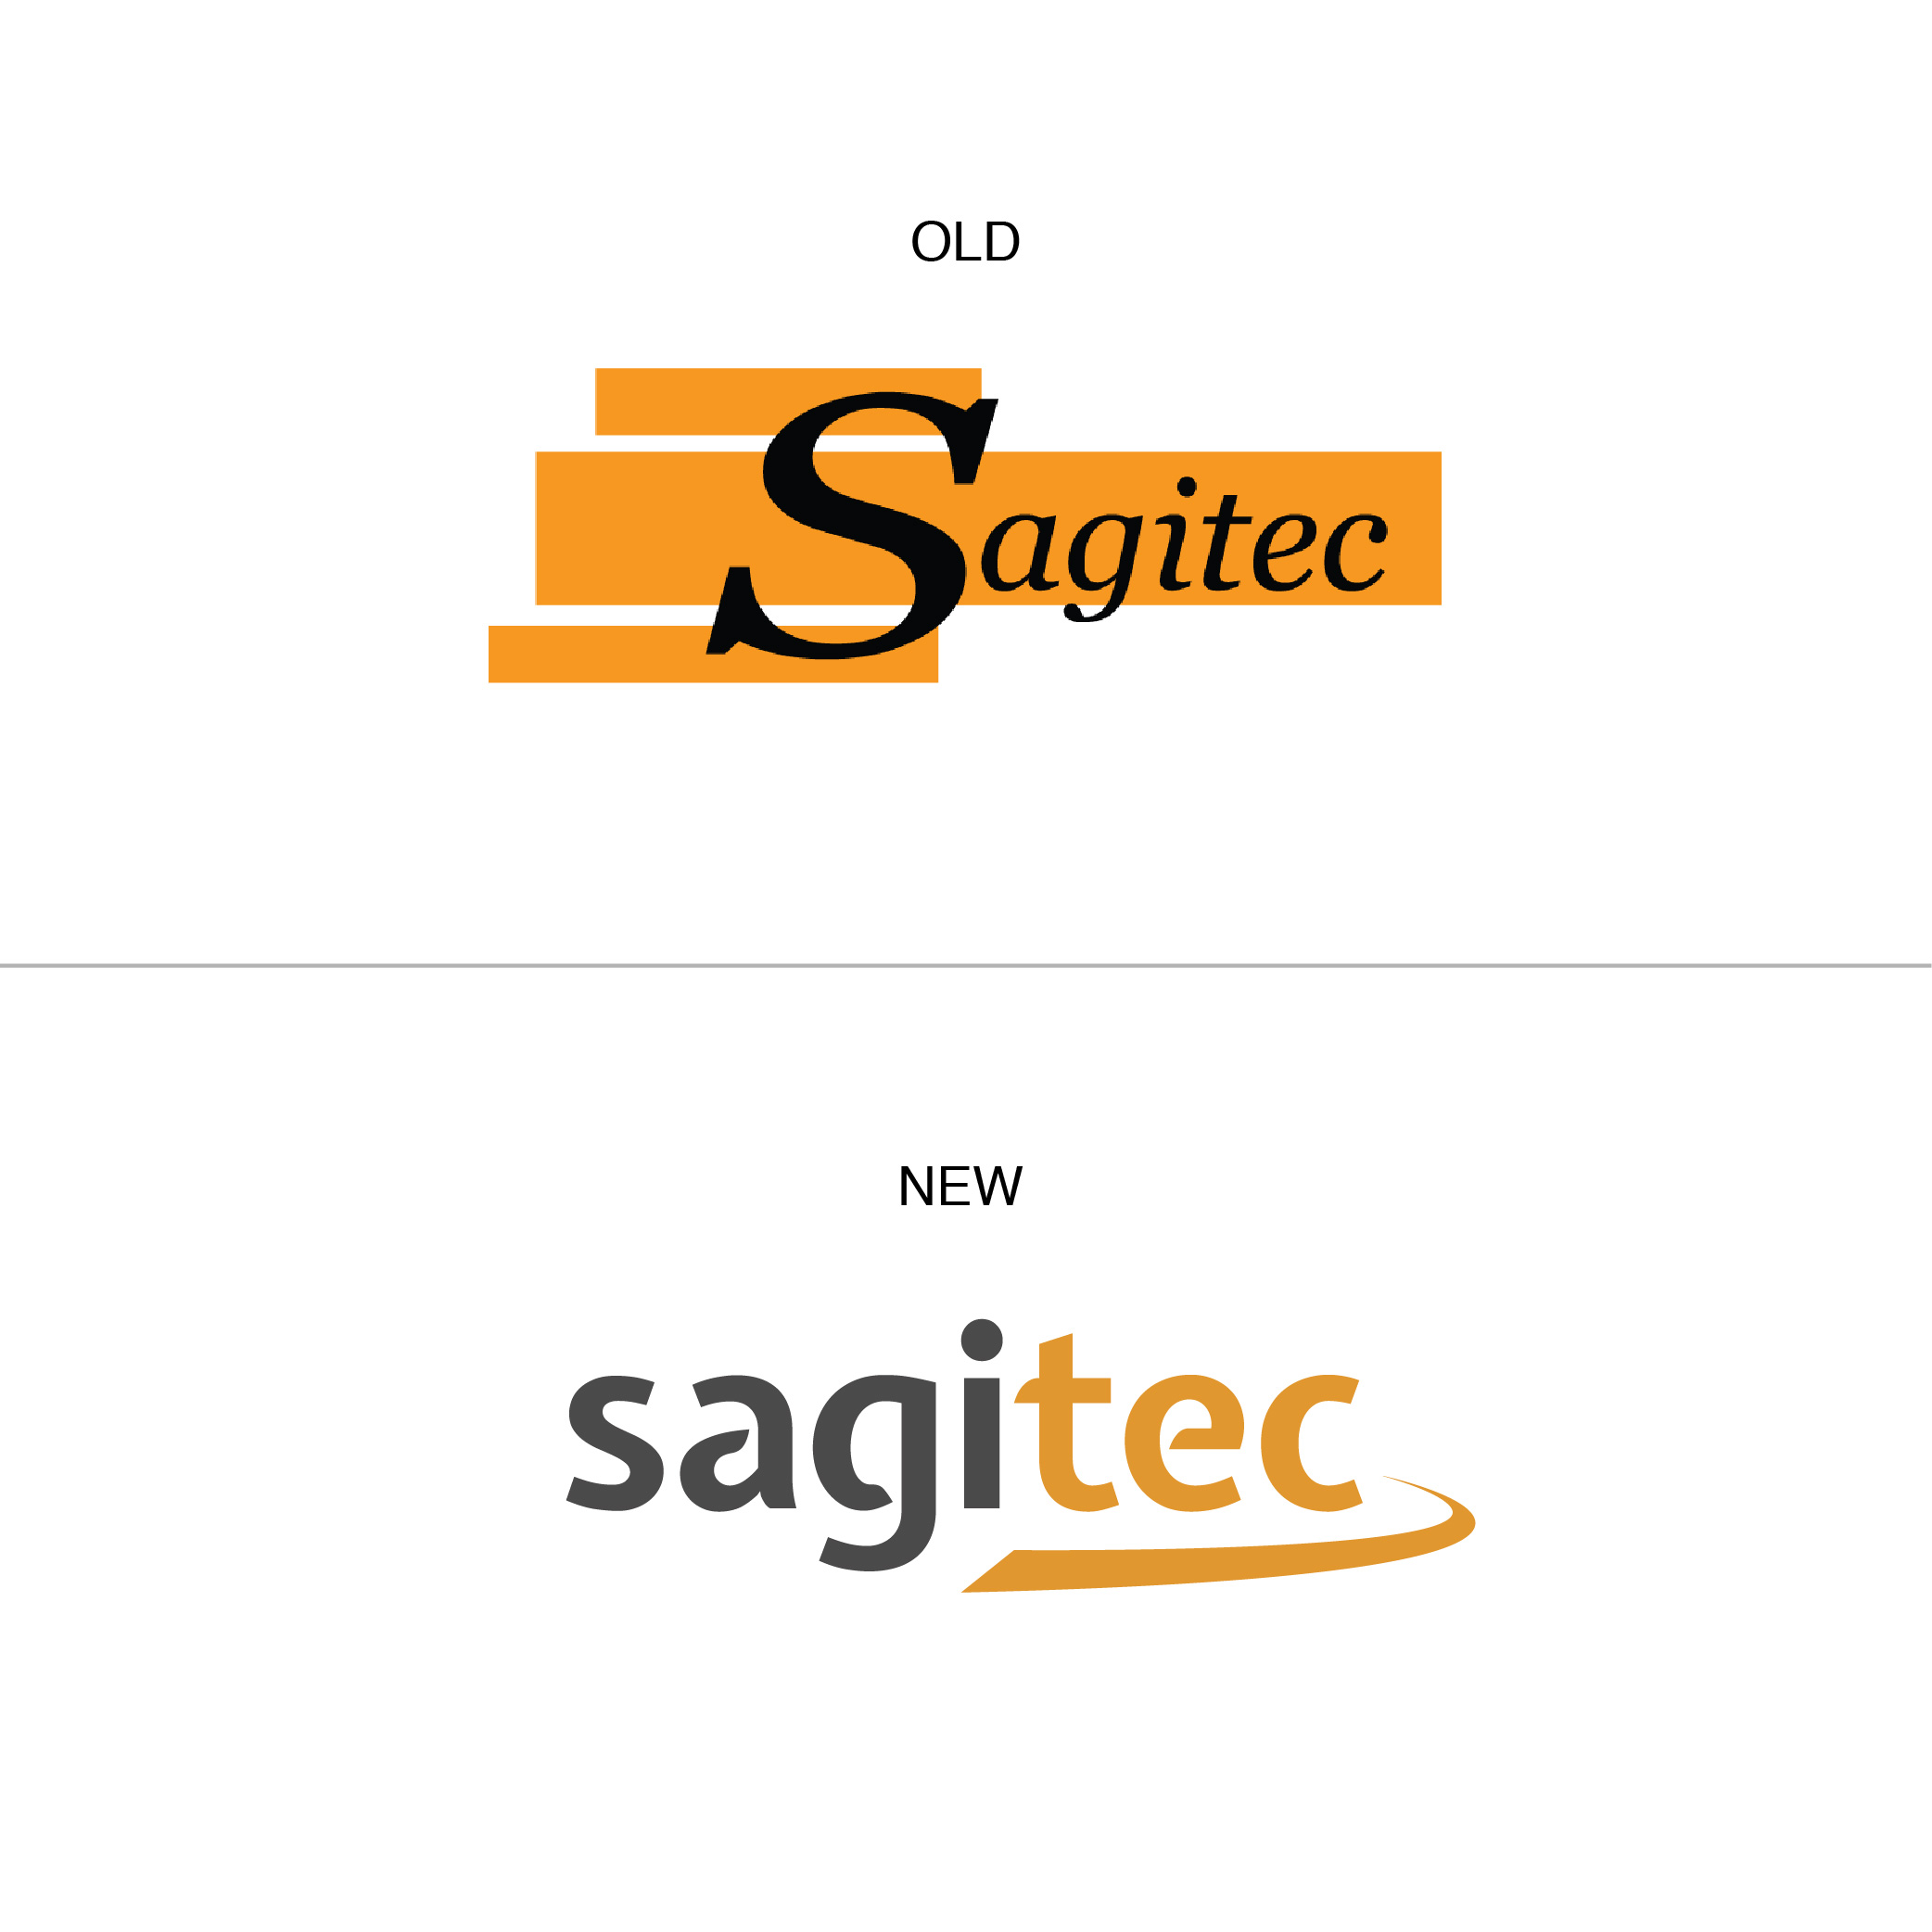 The finalized design outweighed the old logo in several ways. It was now sleek, dynamic, and clearly reflective of Sagitec's values and mission.